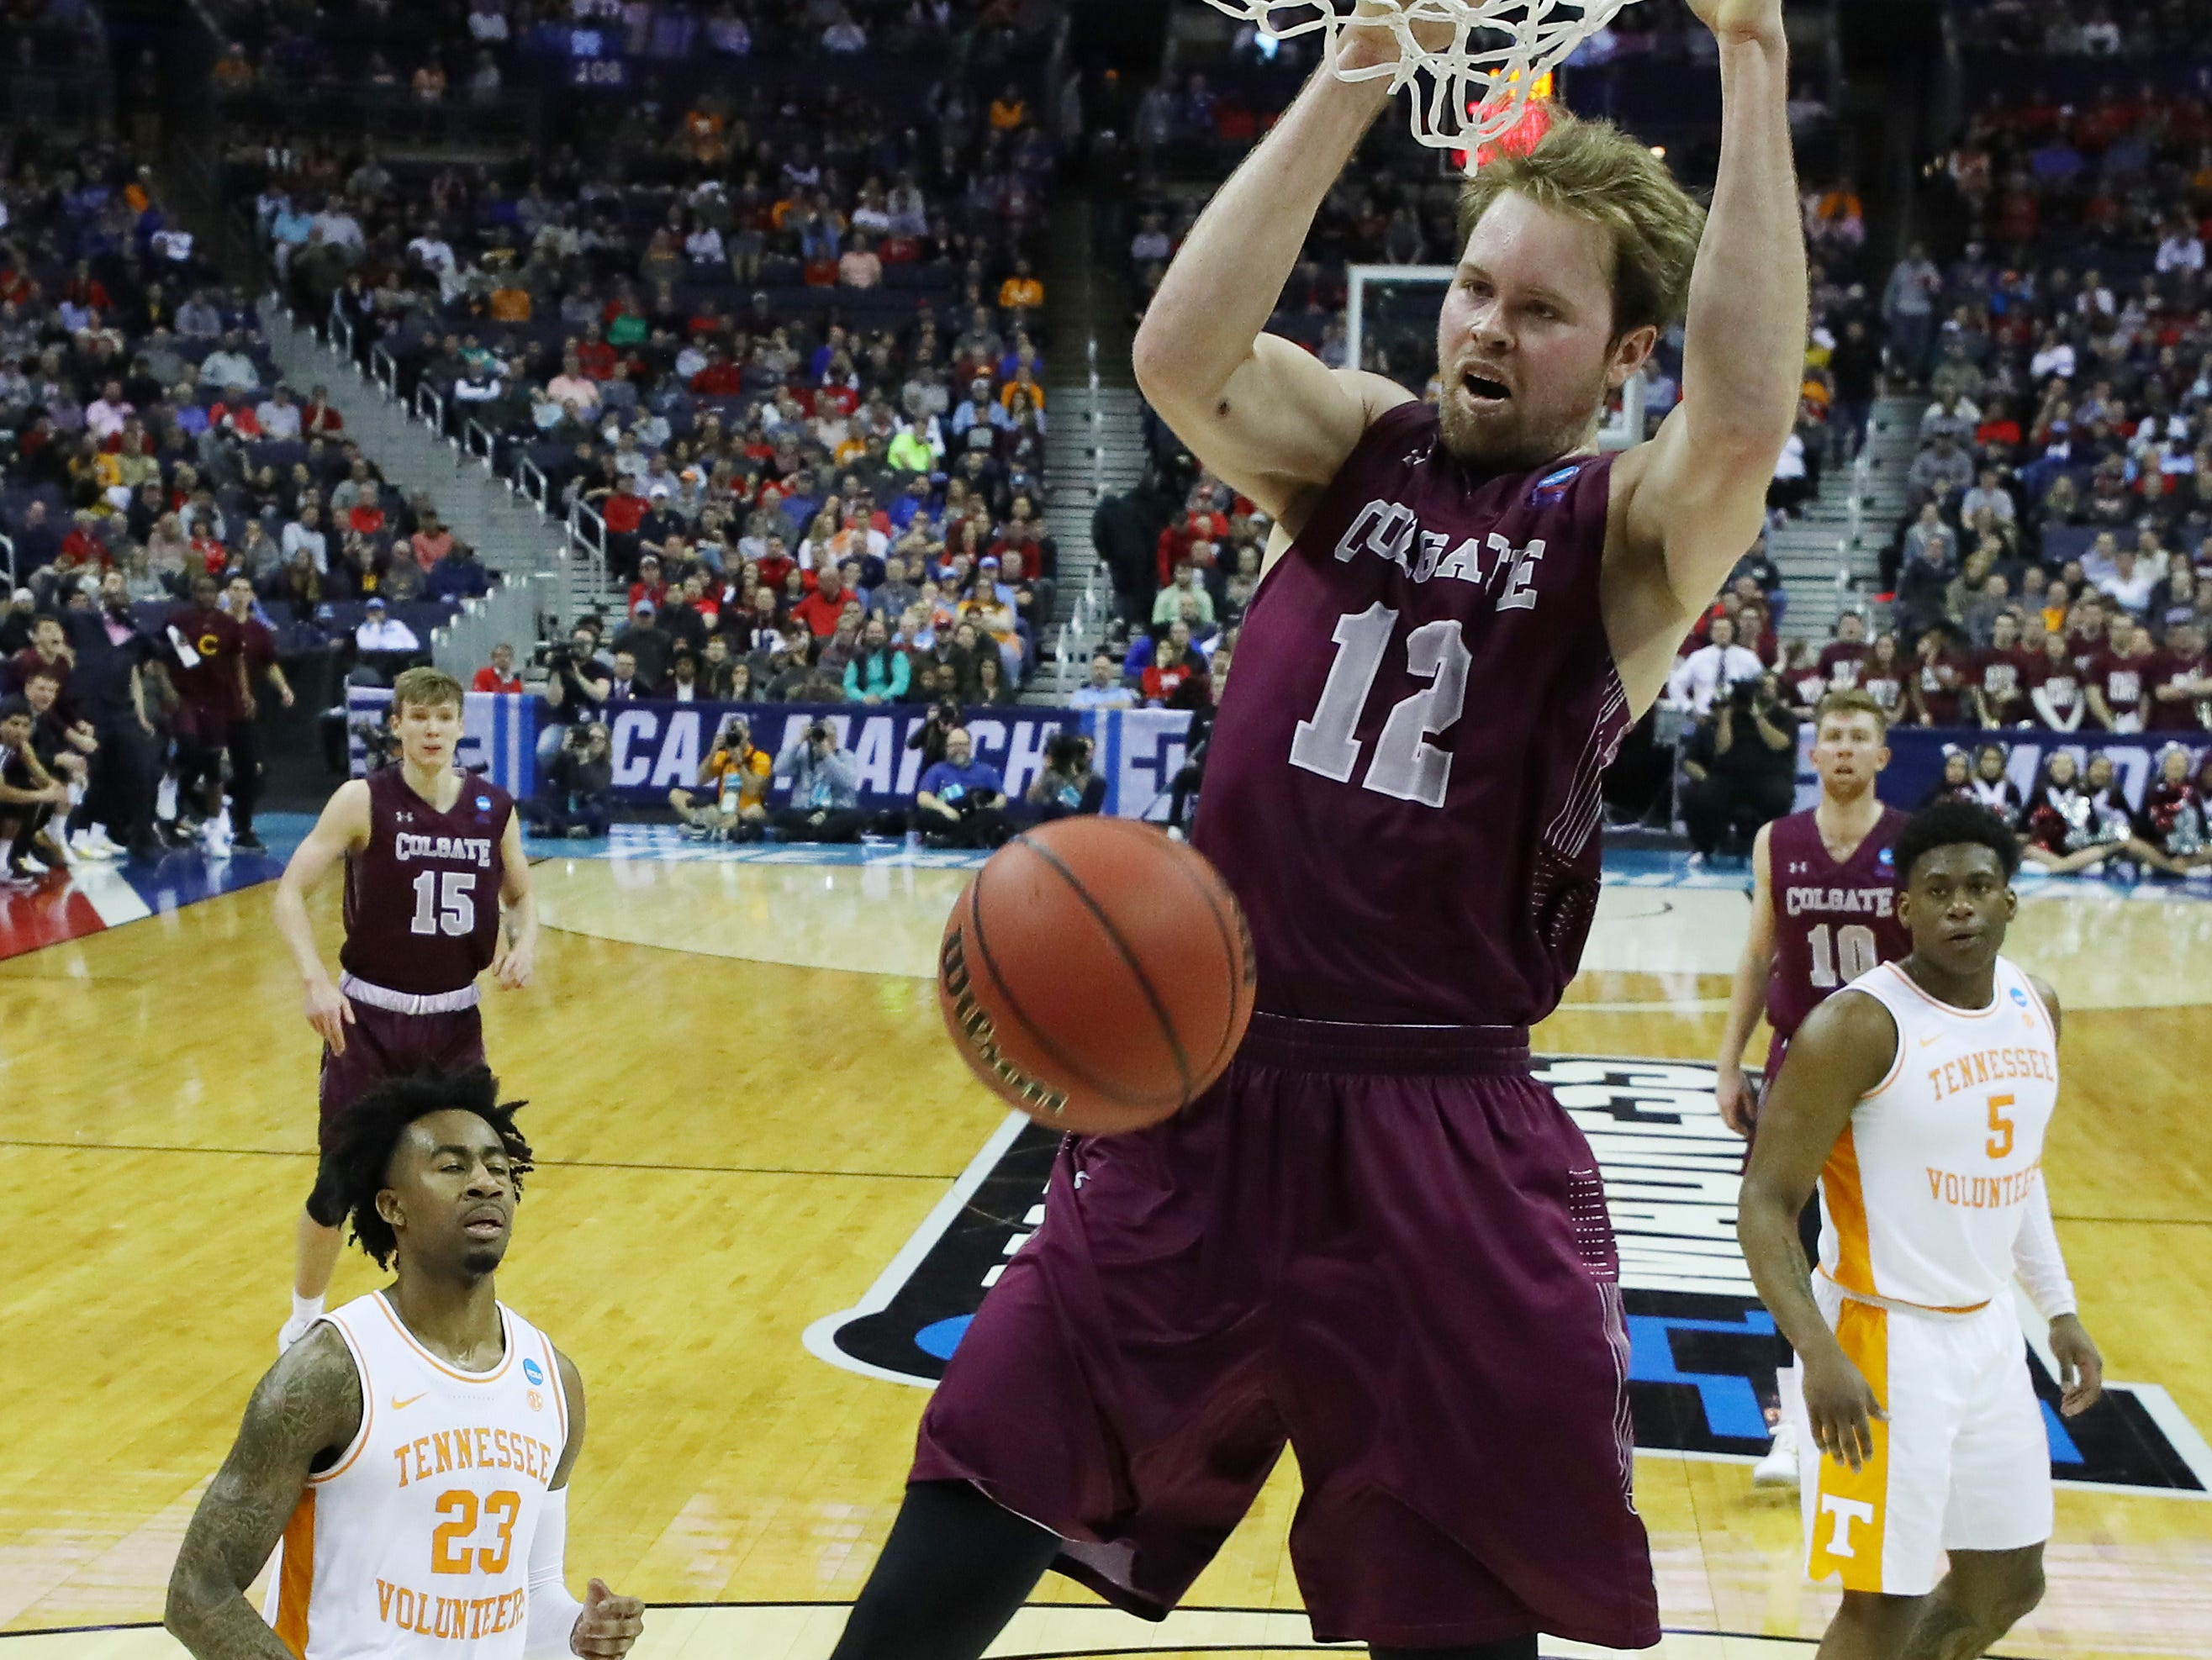 COLUMBUS, OHIO - MARCH 22: Dana Batt #12 of the Colgate Raiders dunks the ball during the first half against the Tennessee Volunteers in the first round of the 2019 NCAA Men's Basketball Tournament at Nationwide Arena on March 22, 2019 in Columbus, Ohio. (Photo by Elsa/Getty Images)